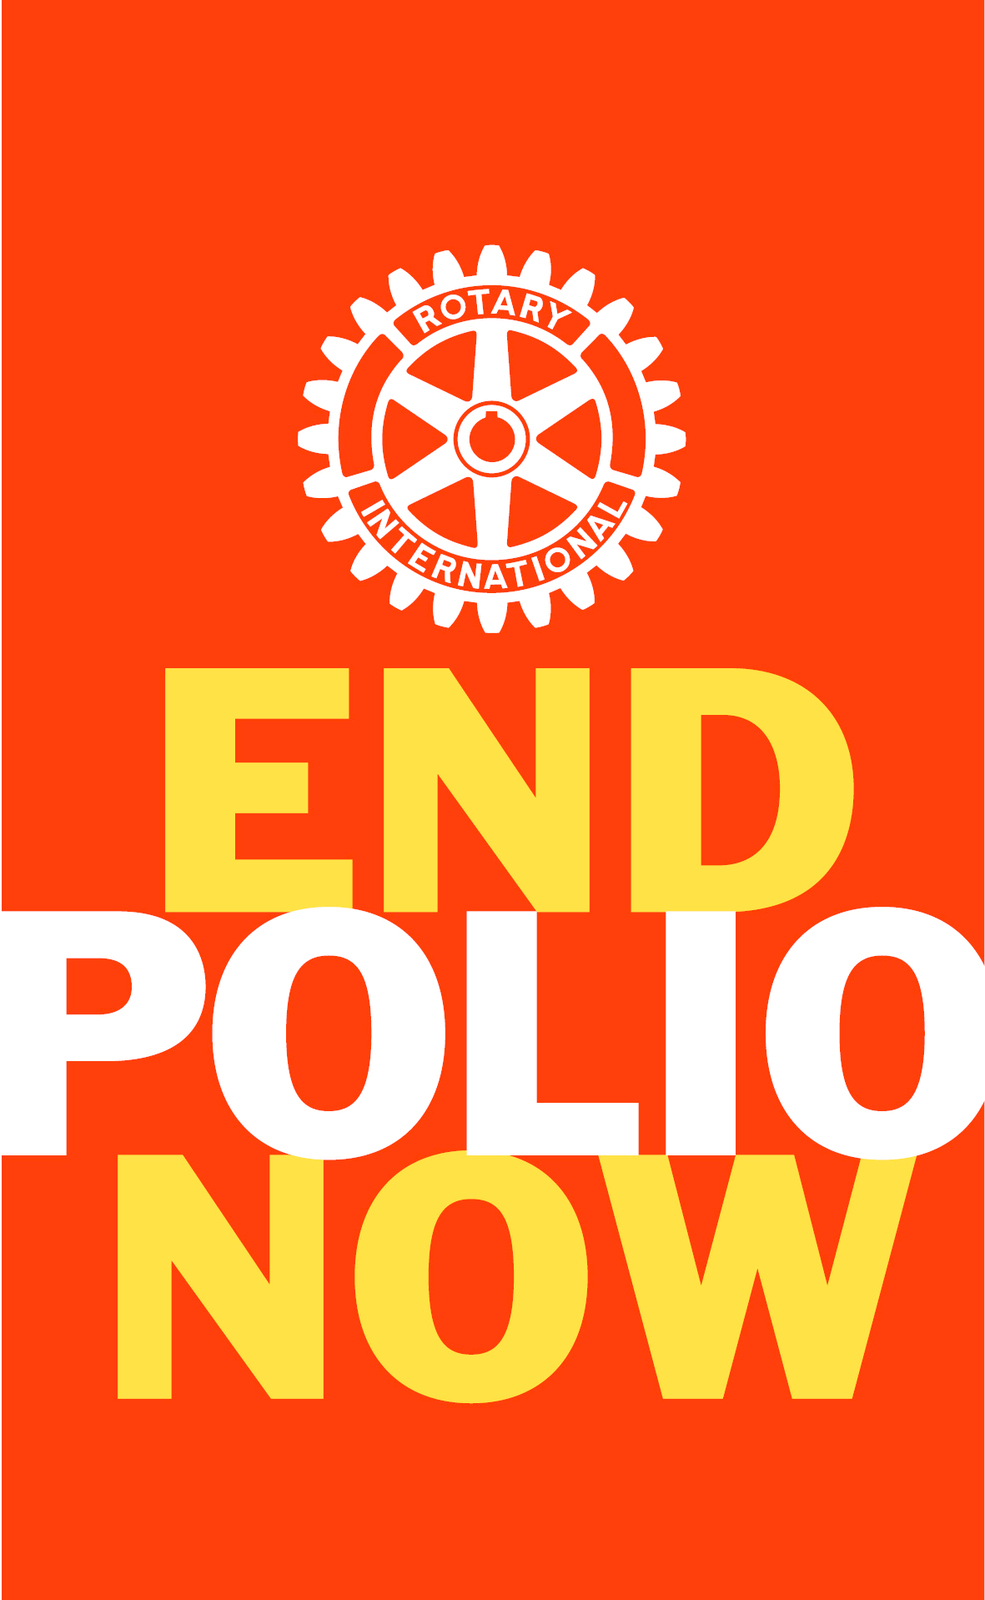 EPN, EndPolioNow, End Polio Now, Polio, Kinderlähmung